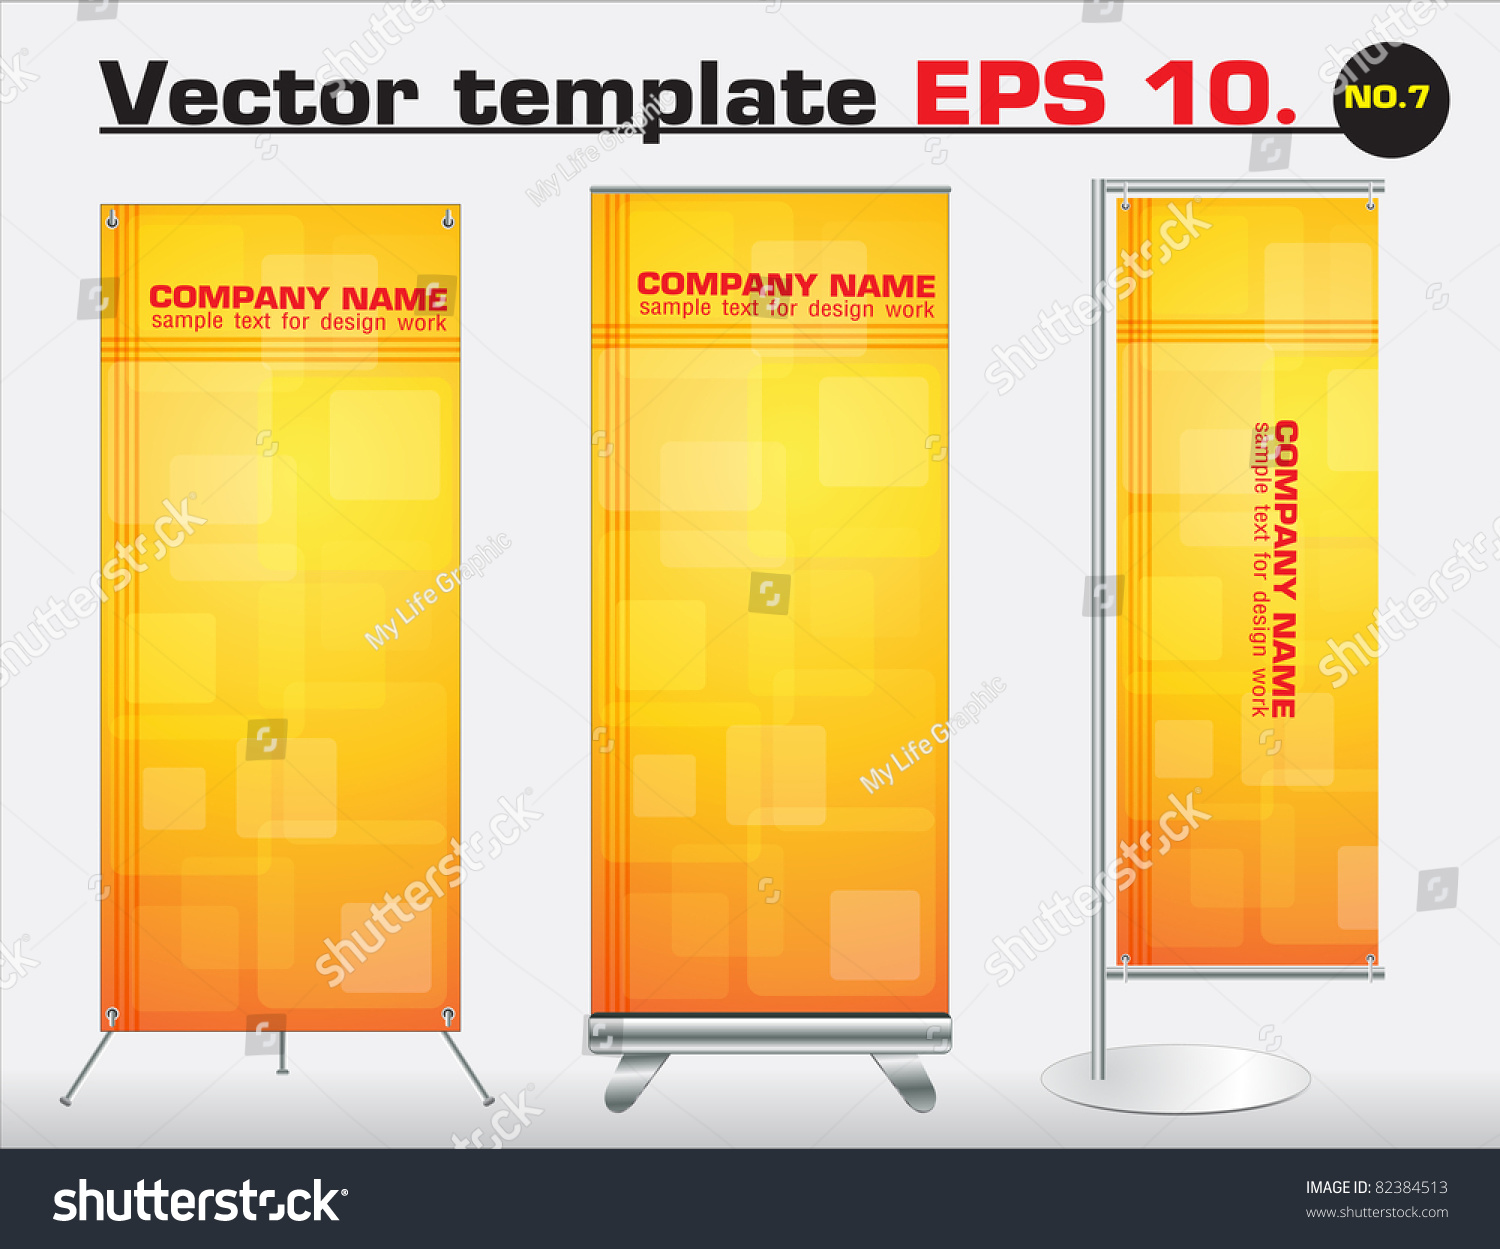 Set Of Banner Stand Display With Identity Background Ready. Chart Stickers. Malaysia Signs. Manuscript Signs Of Stroke. Pneumococcal Pneumonia Signs. Boar Decals. Children's Room Murals. Botanic Garden Signs Of Stroke. Hopscotch Stickers